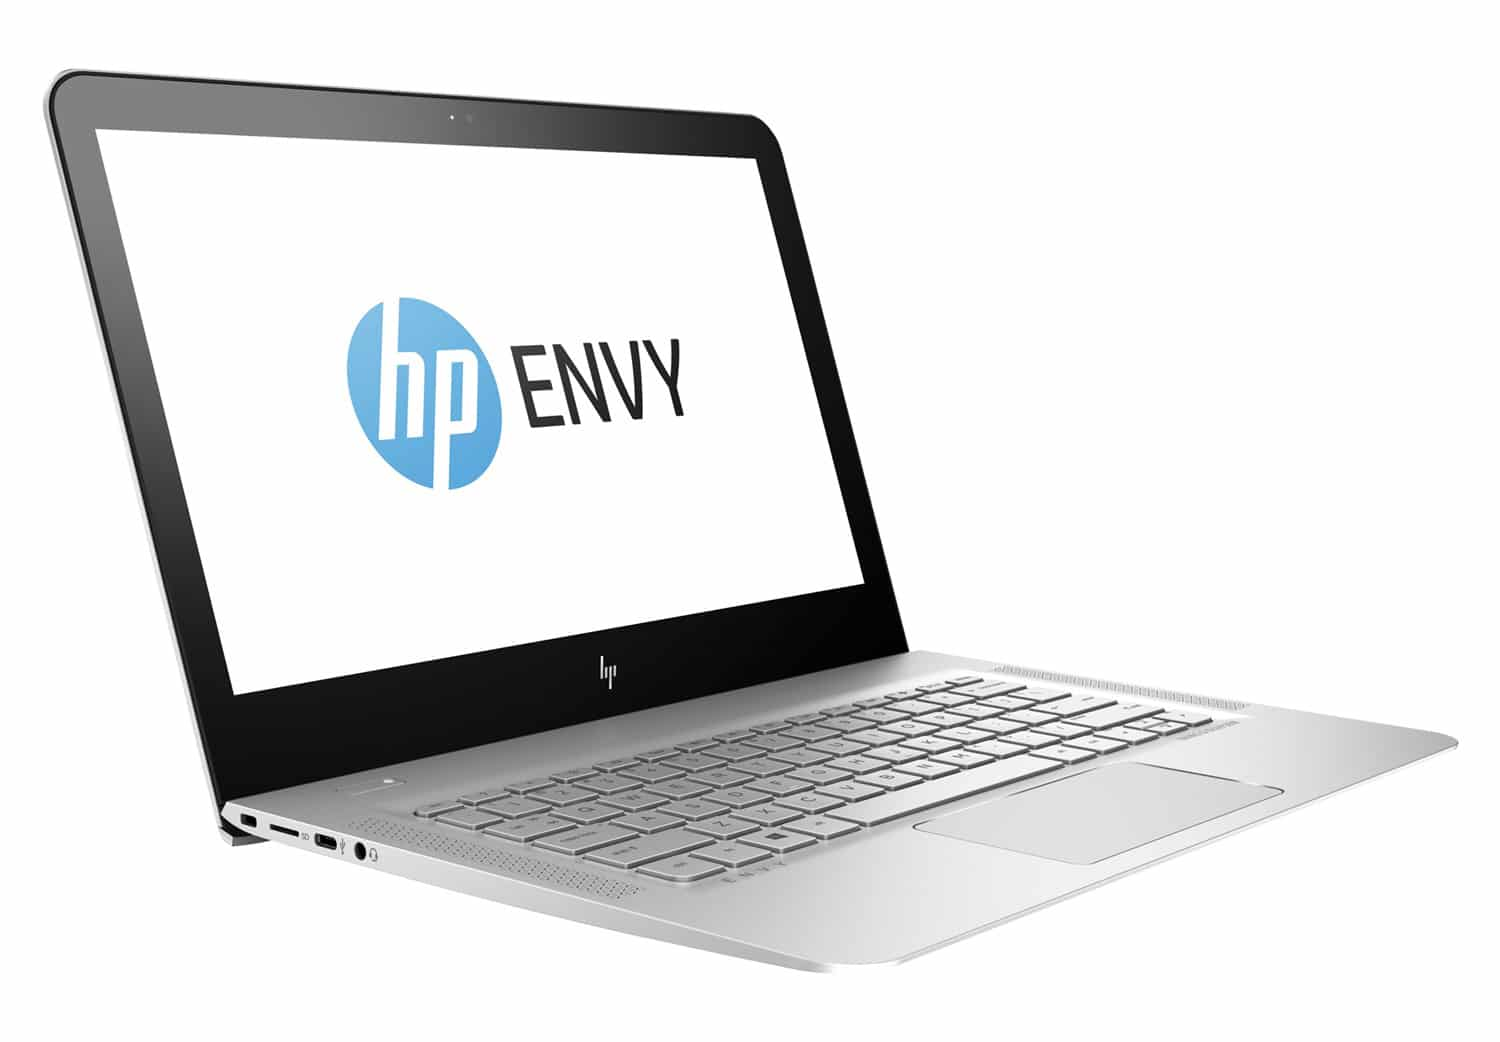 HP Envy 13-ab006nf, Ultrabook 13 pouces IPS SSD 512 Go Kaby 8 Go (799€)